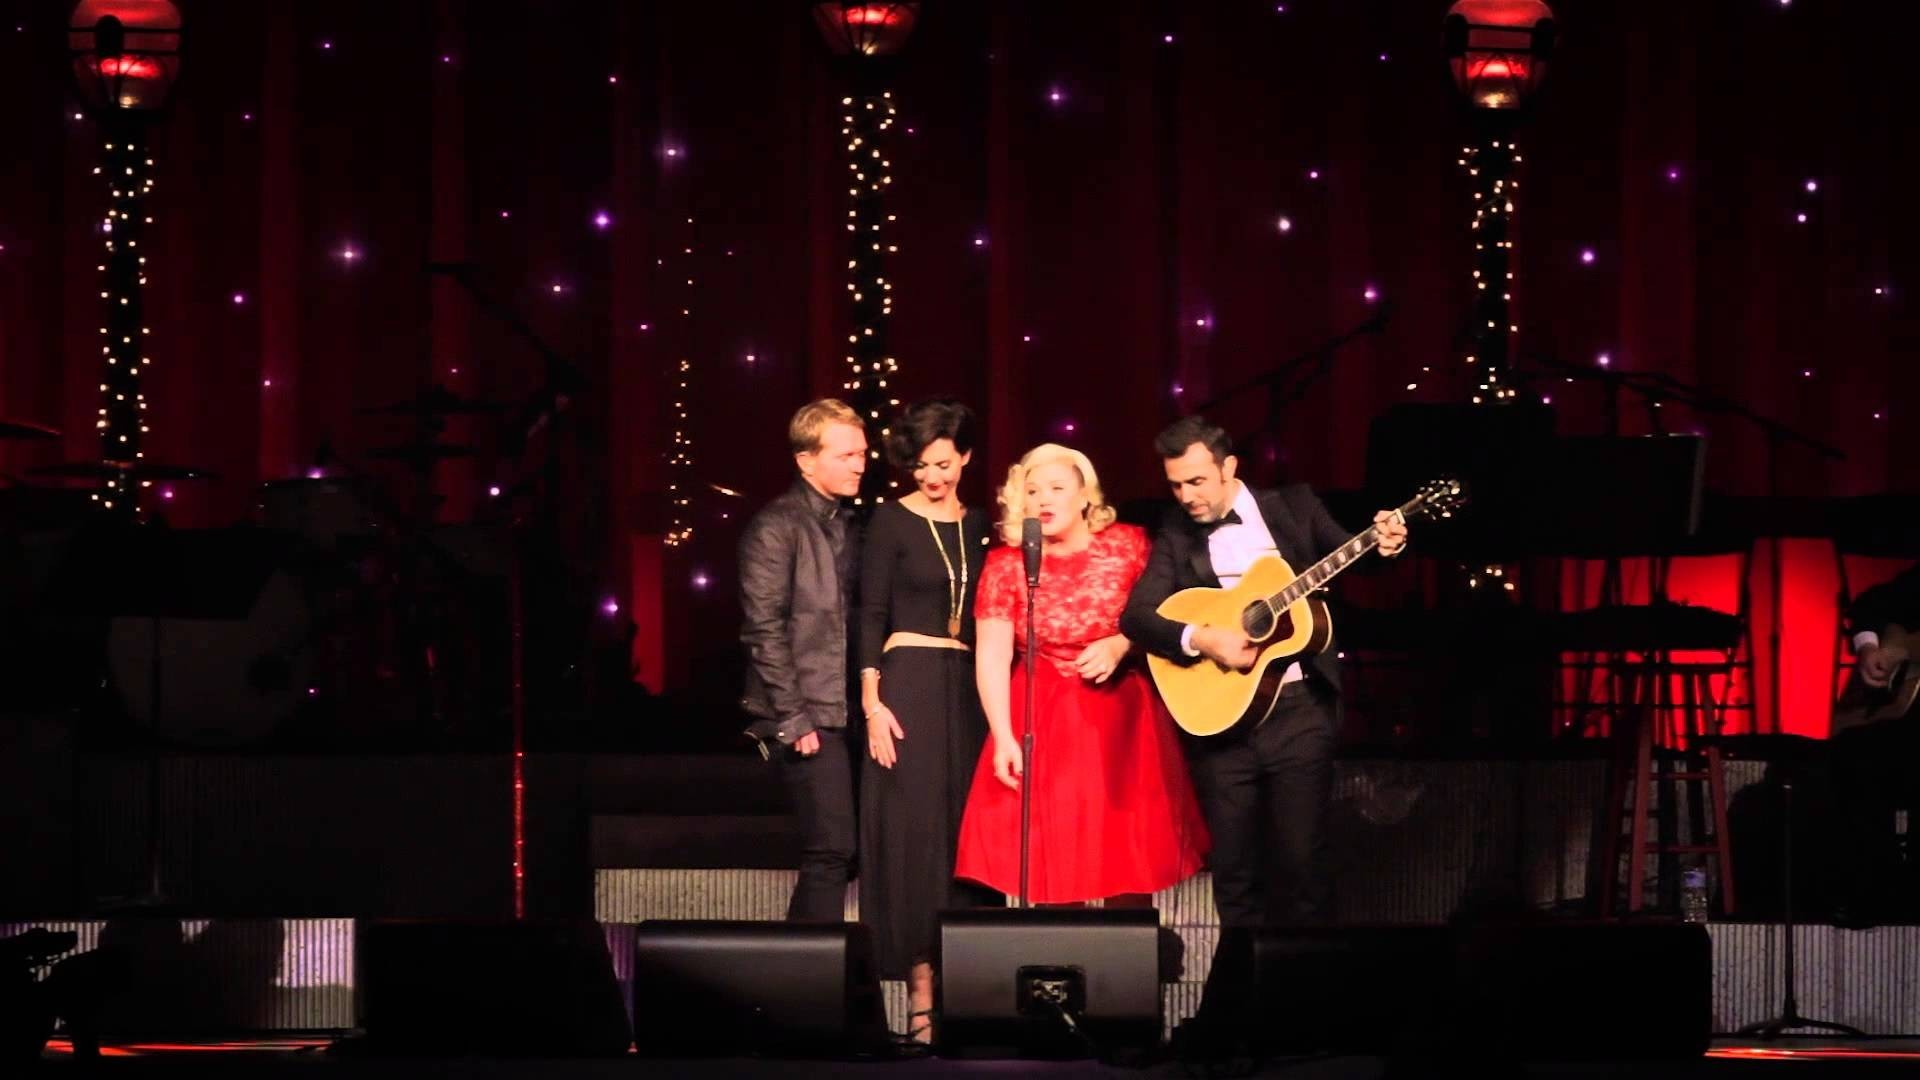 Team Kelly Clarkson gives stunning 'Wrapped In Red' performance at charity event